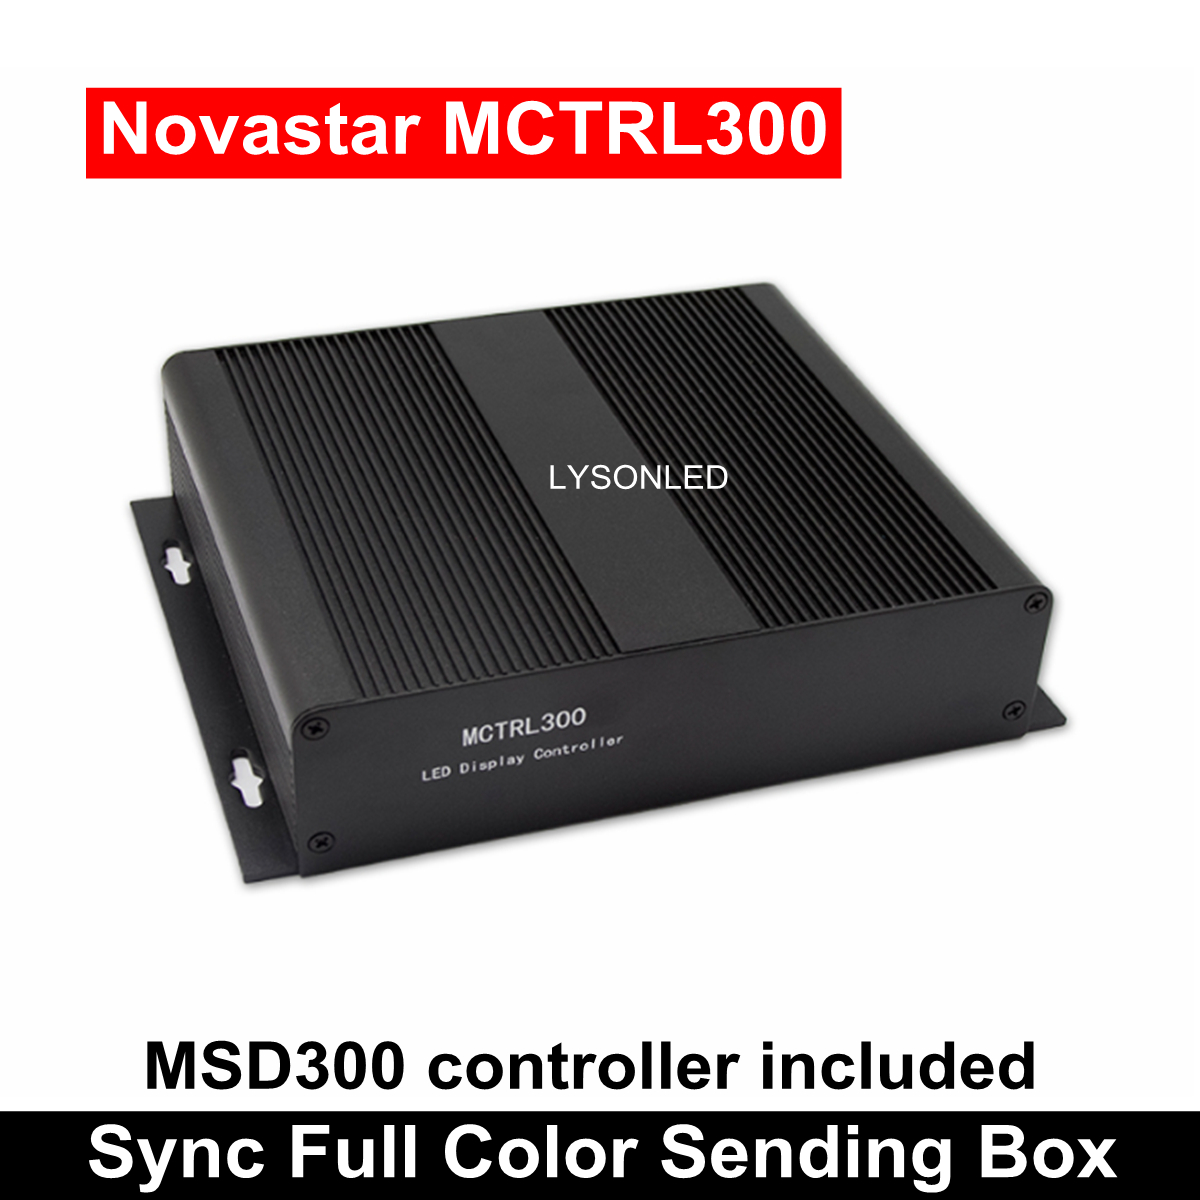 NovaStar MCTRL300 Controller Full Color LED Display Sending Box With MSD300 Mother Card Inside